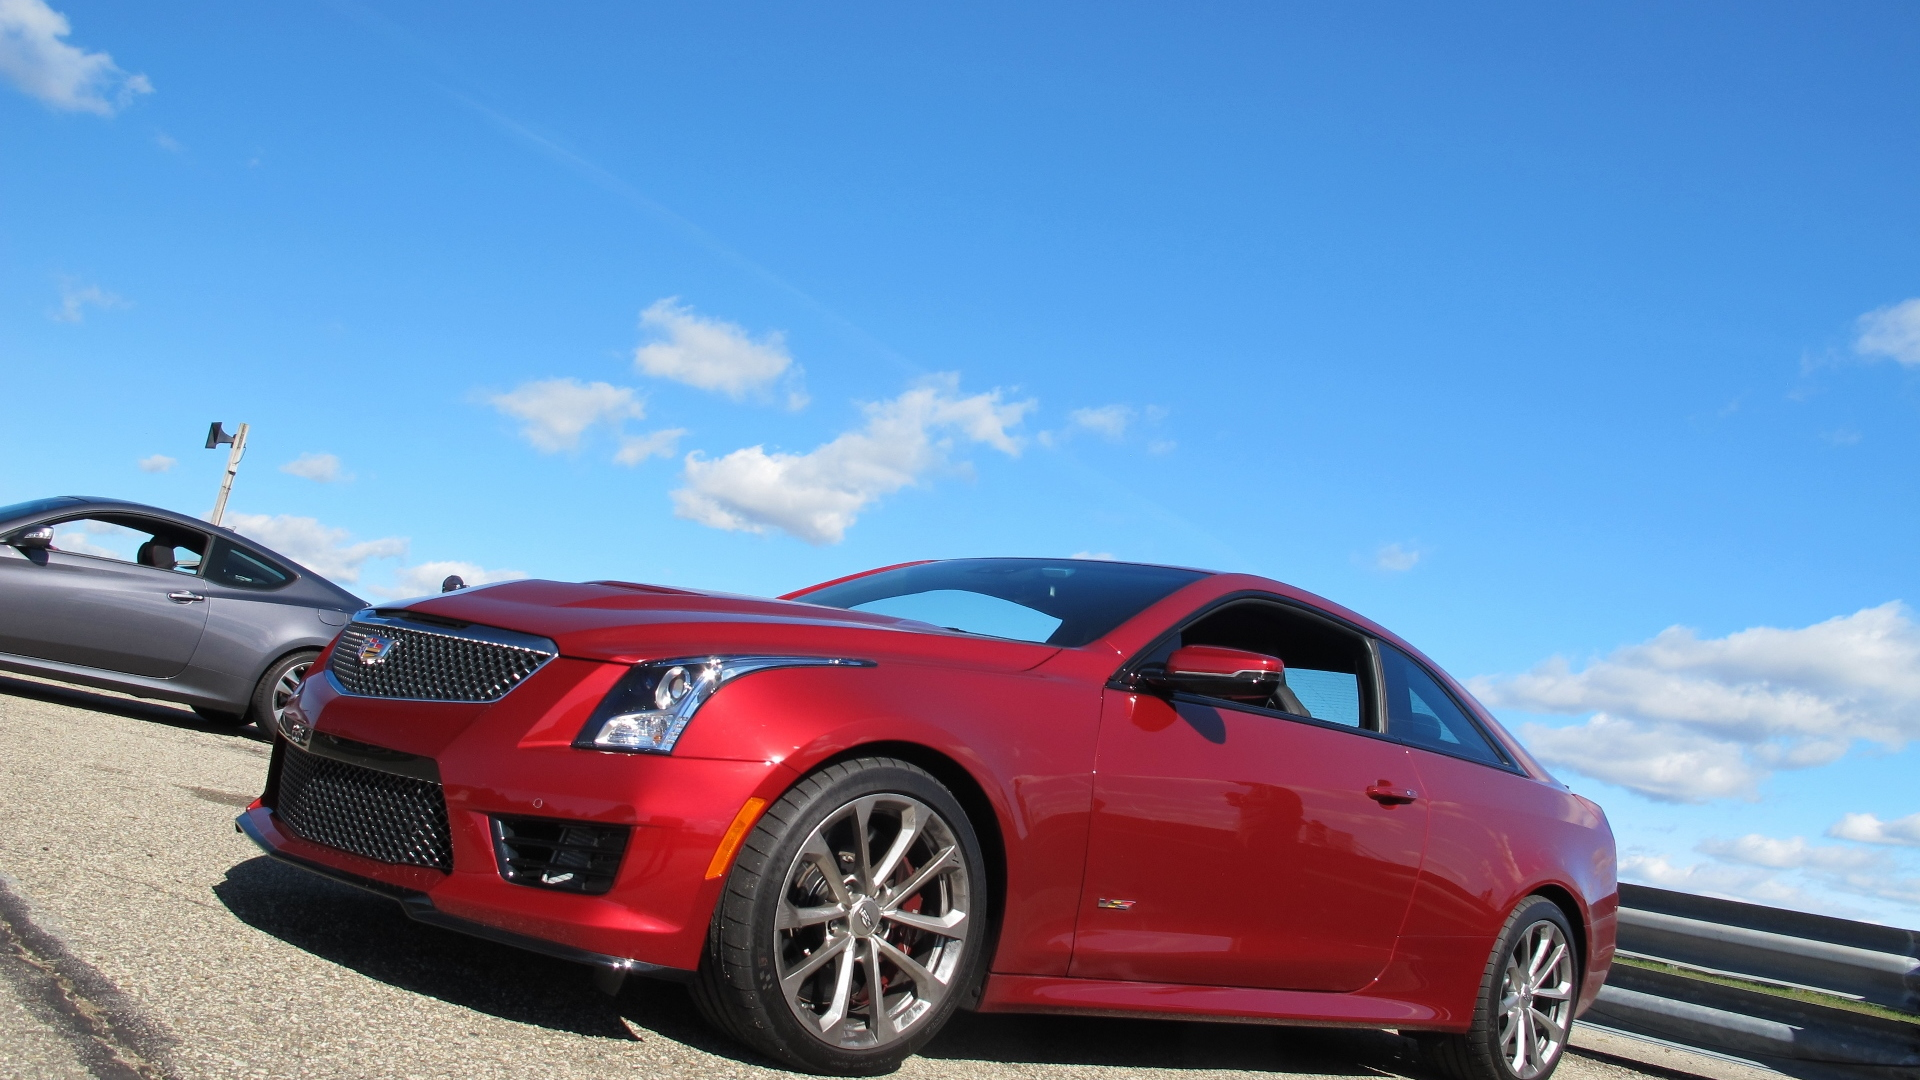 2016 Cadillac ATS-V Coupe track day event